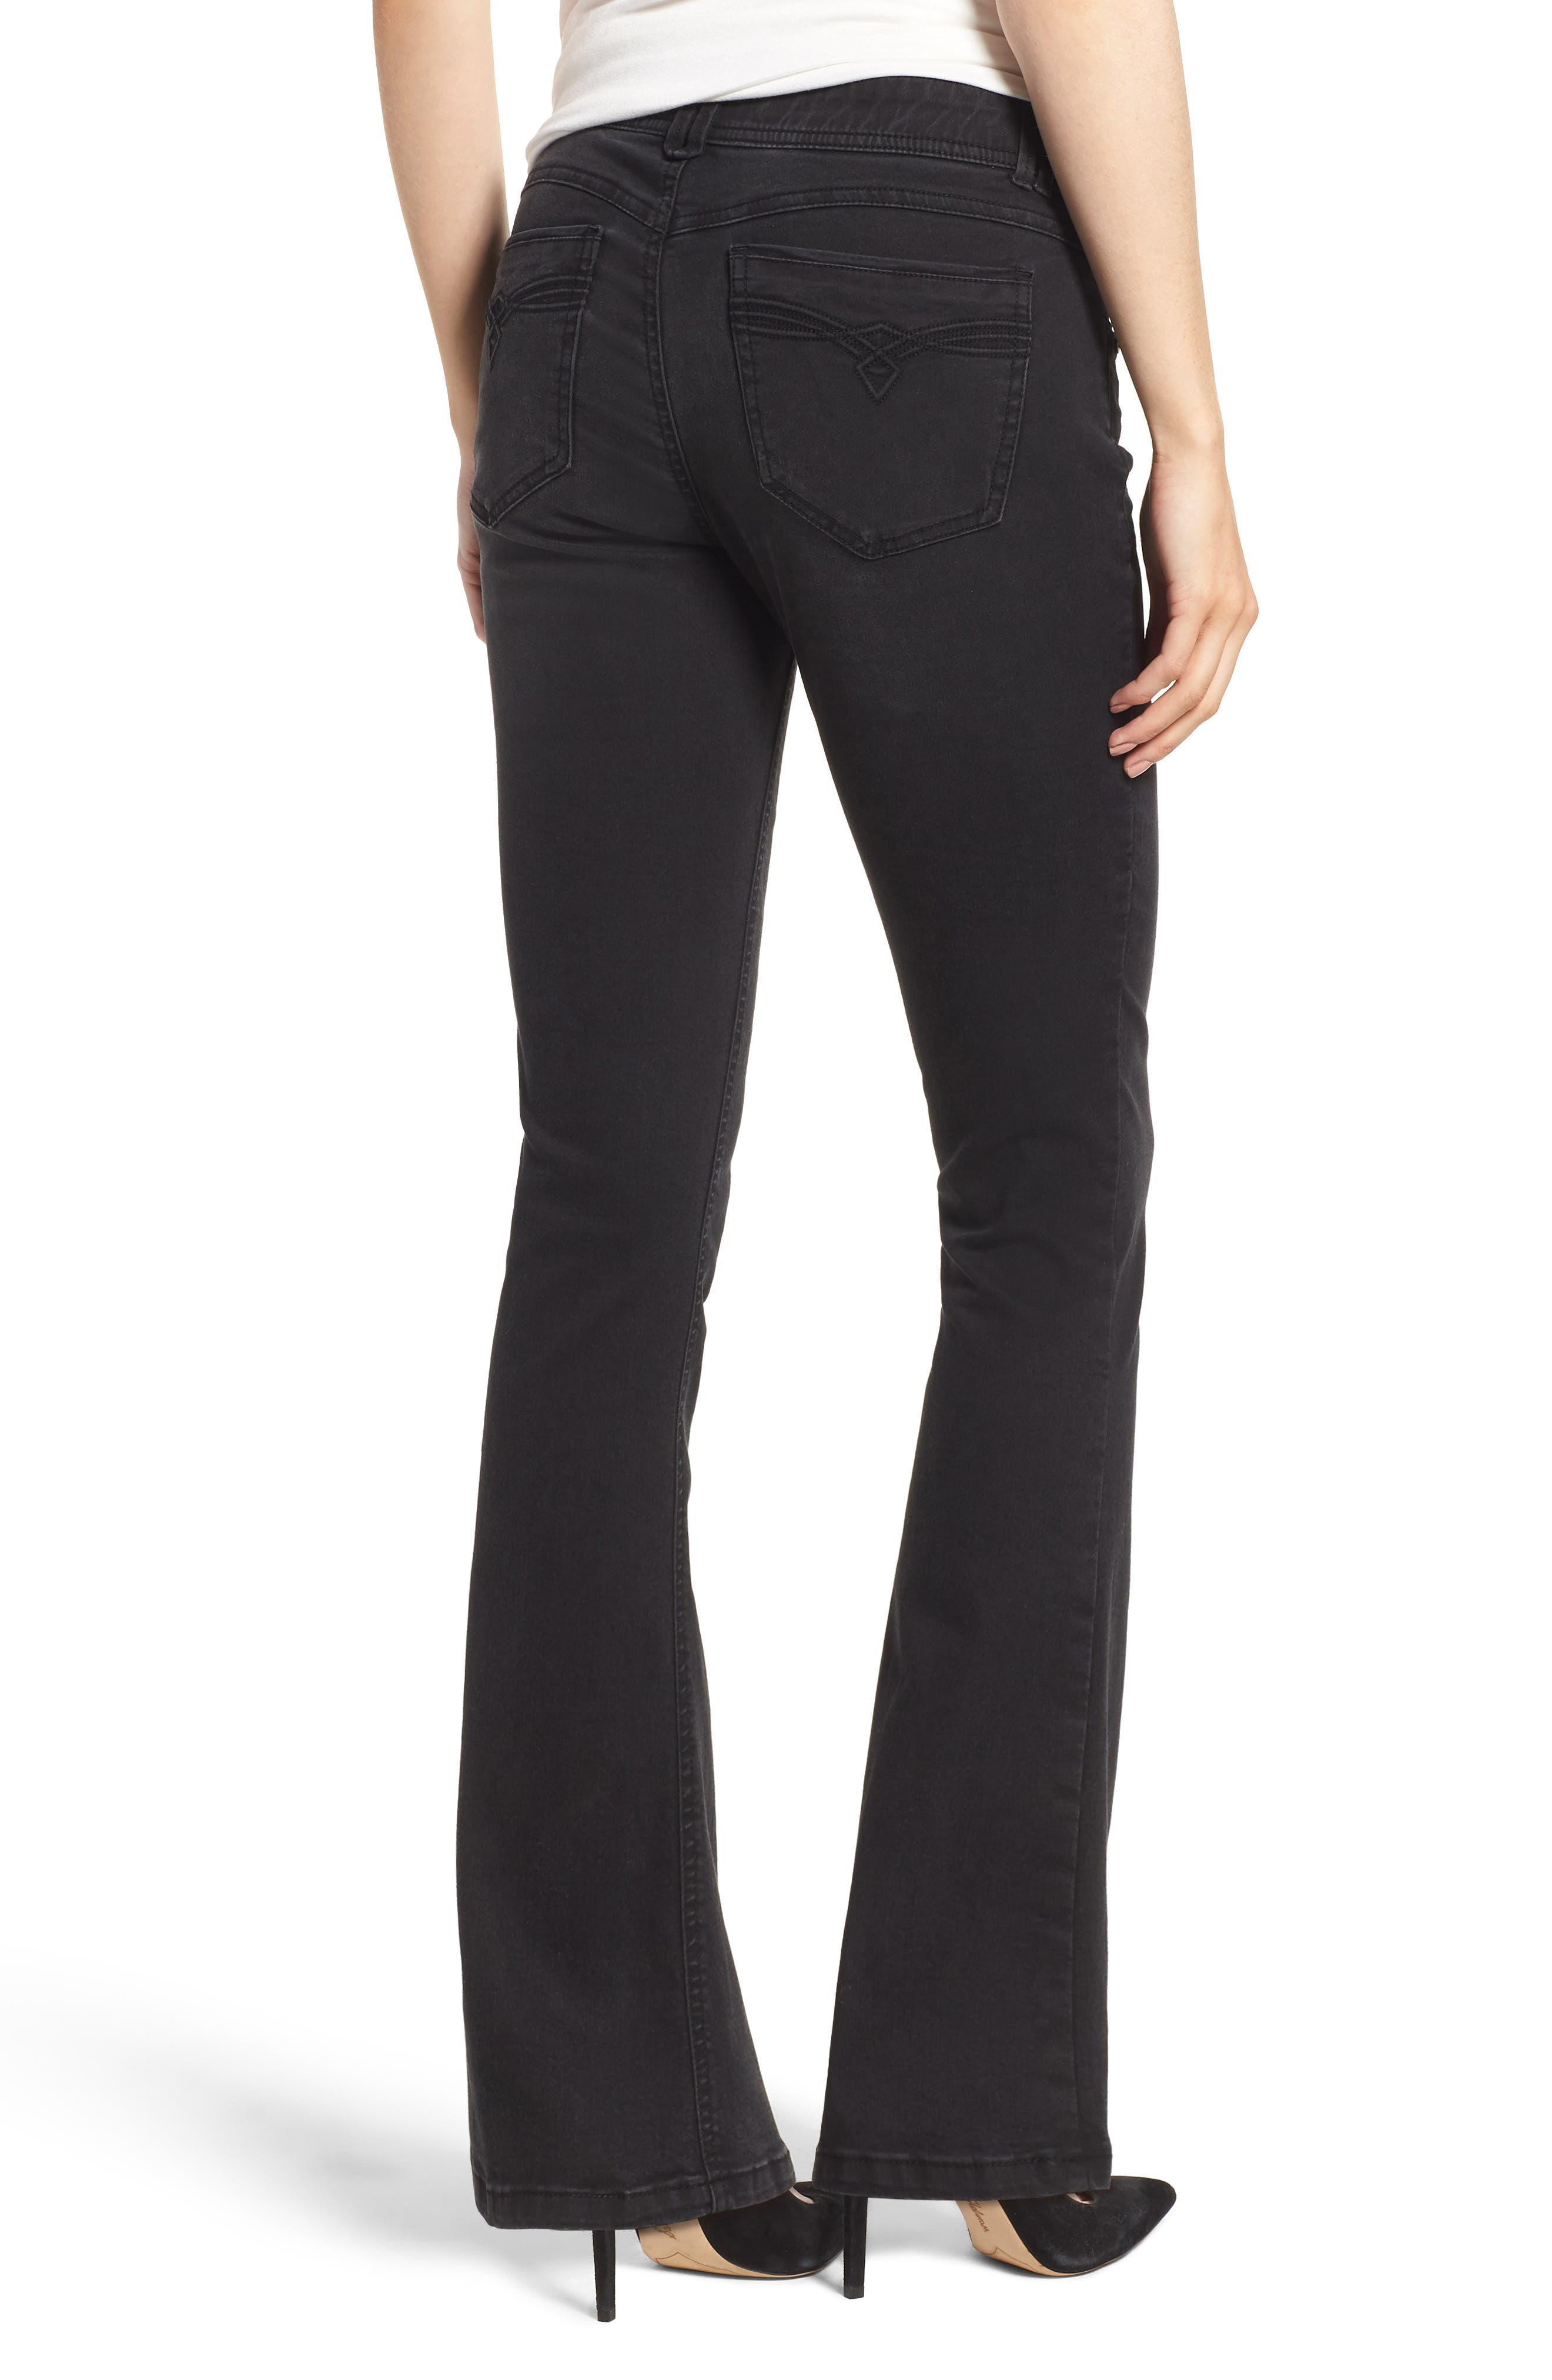 Ab-solution Itty Bitty Bootcut Jeans,                             Alternate thumbnail 2, color,                             001